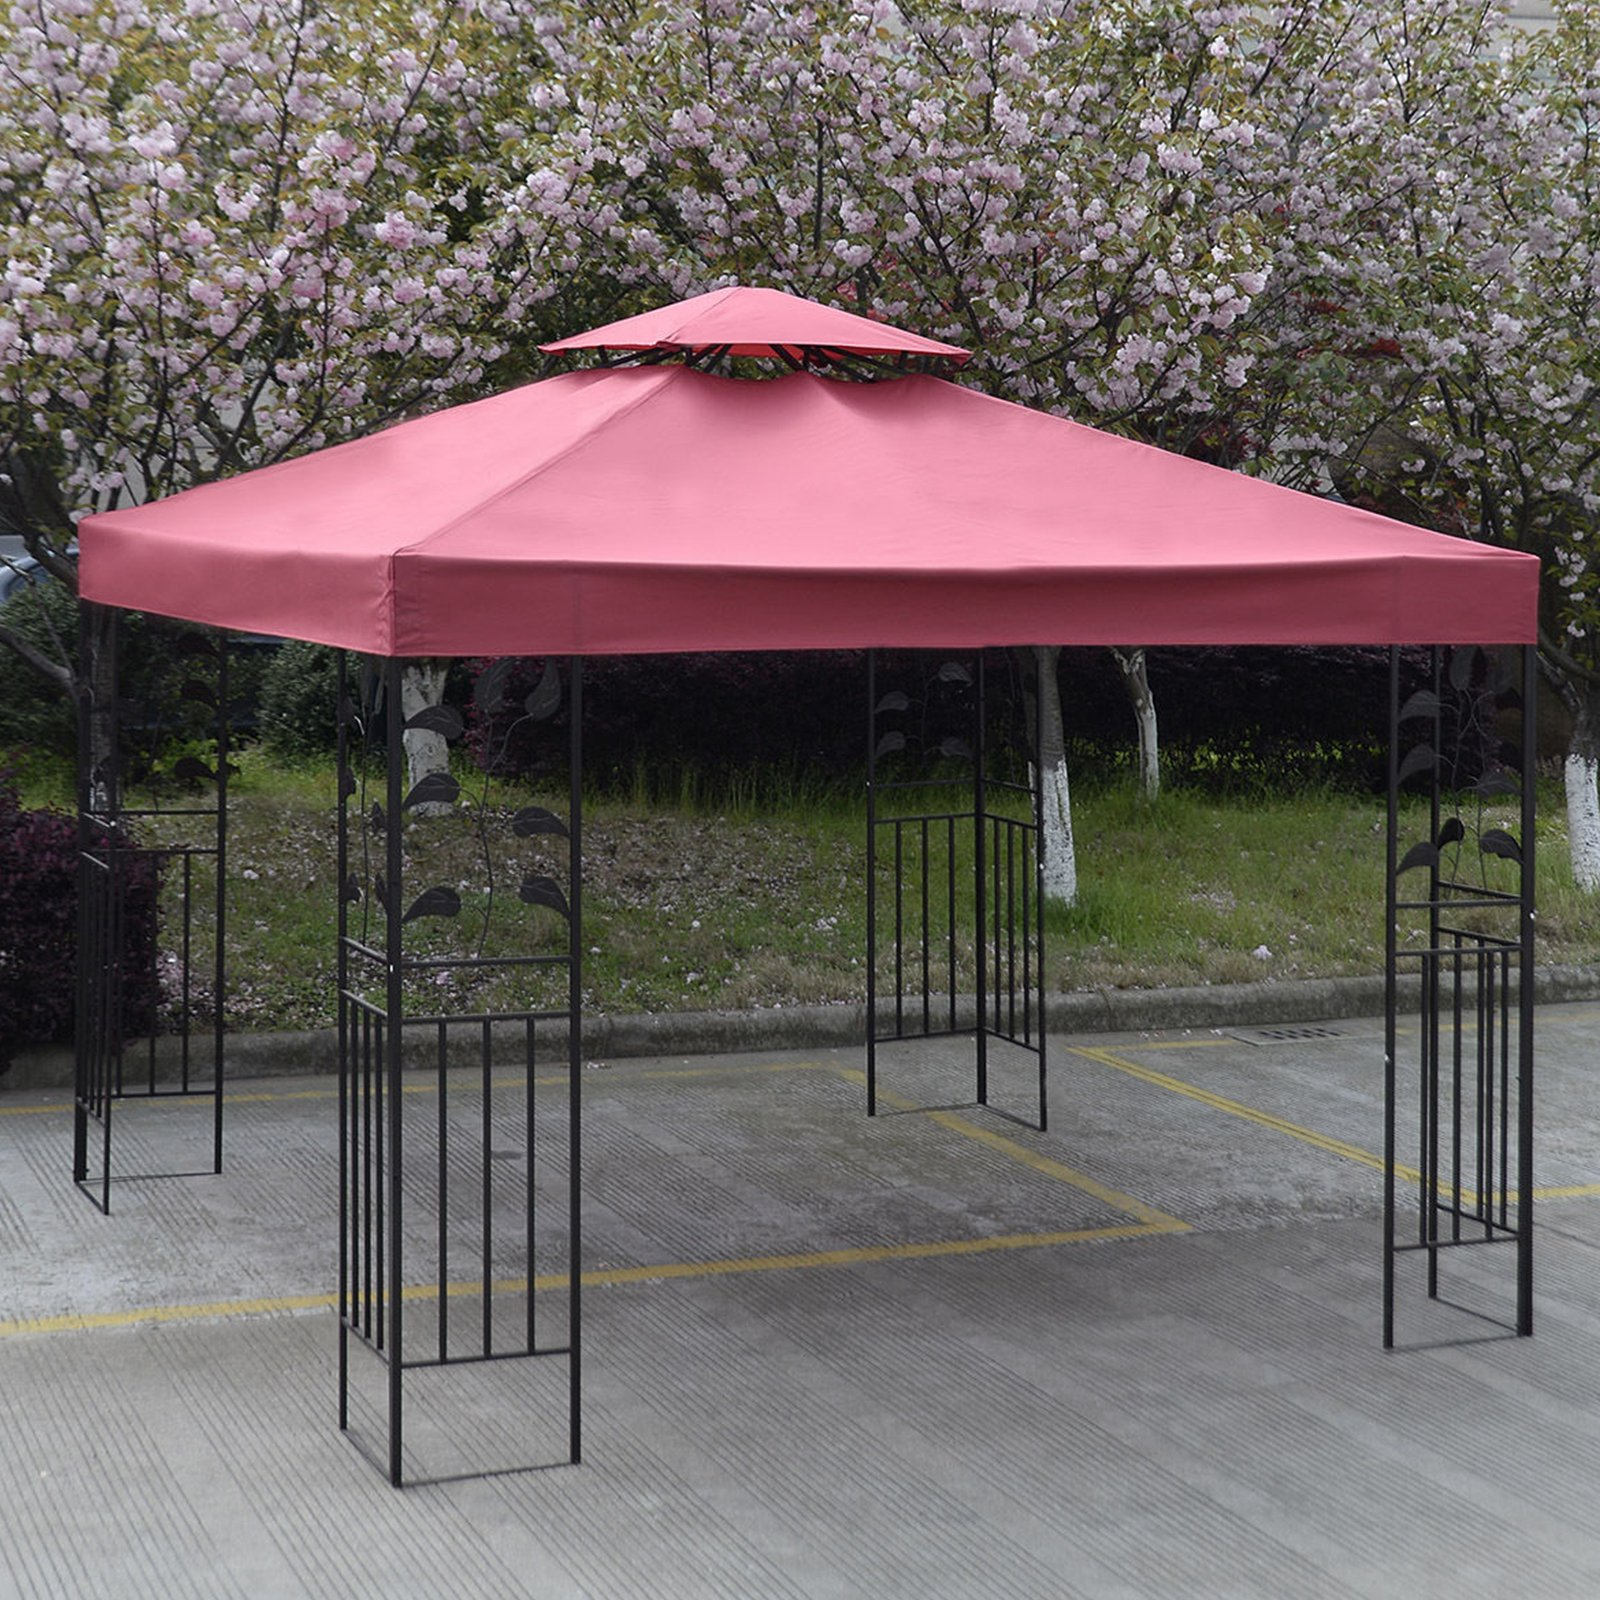 10' X 10' Gazebo Top Cover Patio Canopy Replacement 1-Tier or 2-Tier 3 Color Protection Against UV Rays From Sun Brand New (2 Tier Red)